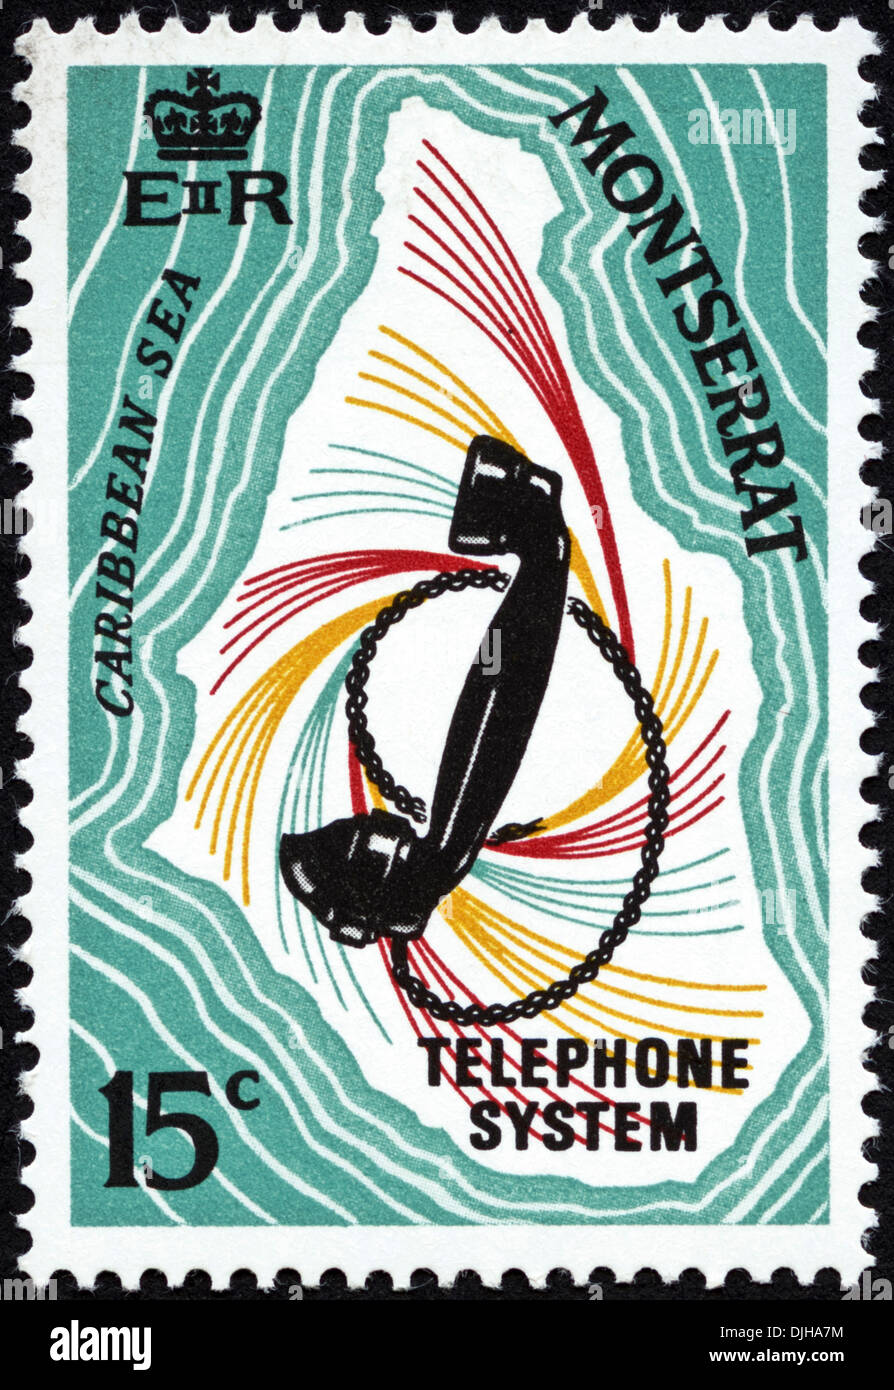 postage stamp Montserrat 15c featuring Telephone System dated 1969 - Stock Image